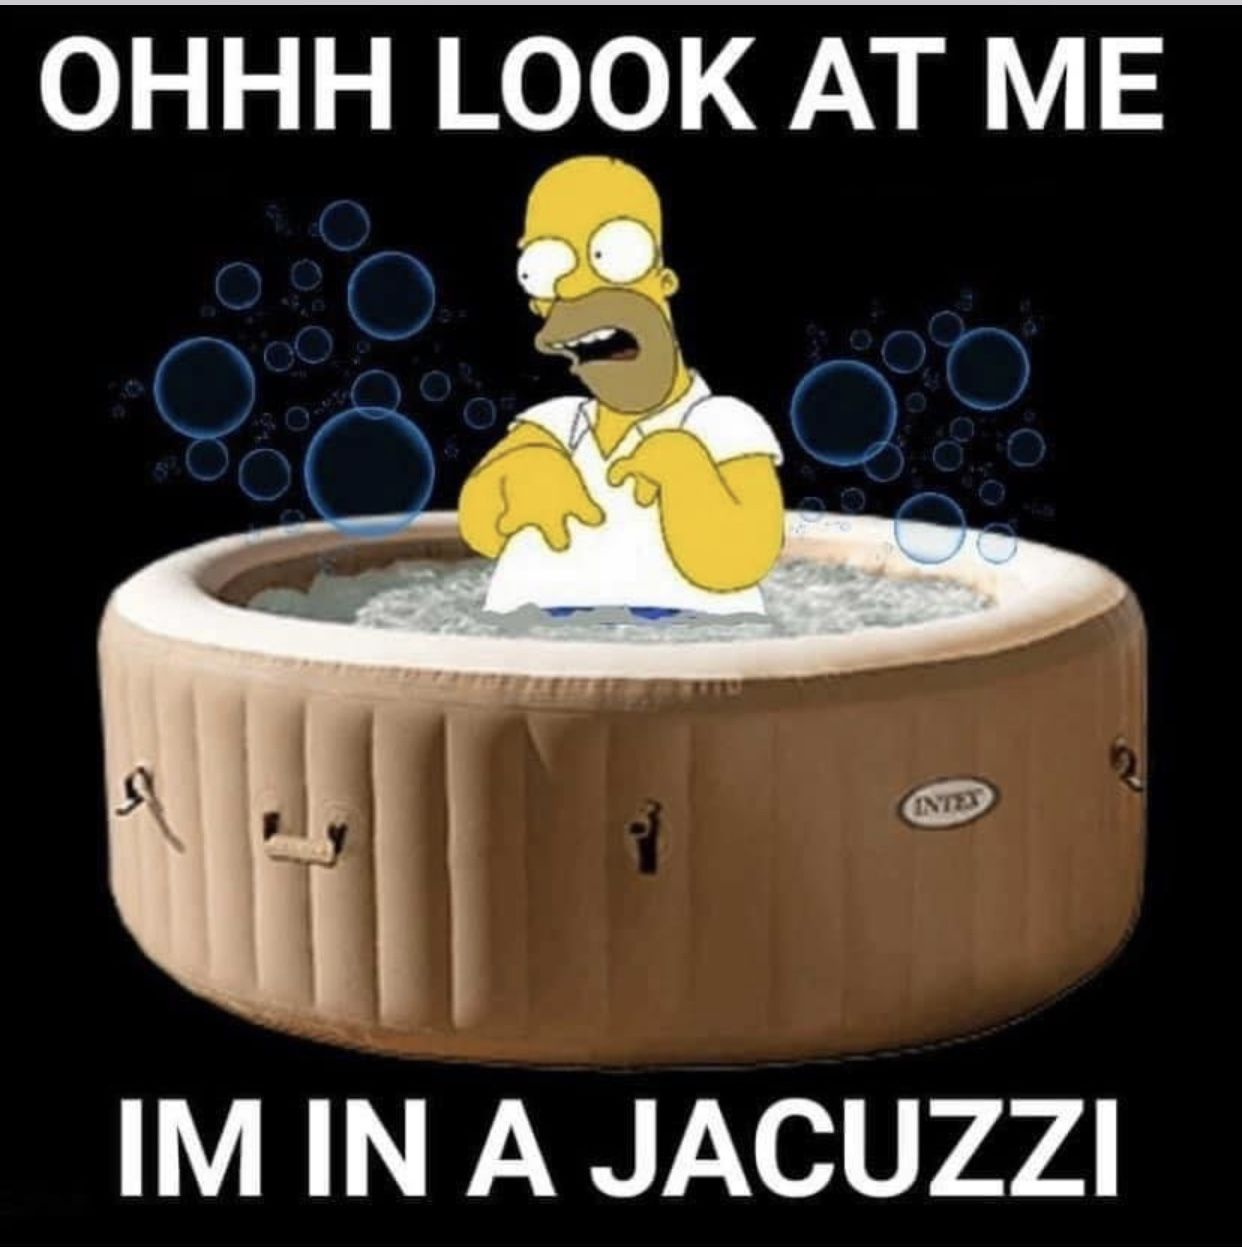 Pin By Les Pinchbeck On Meme Facebook In 2020 Jacuzzi Memes